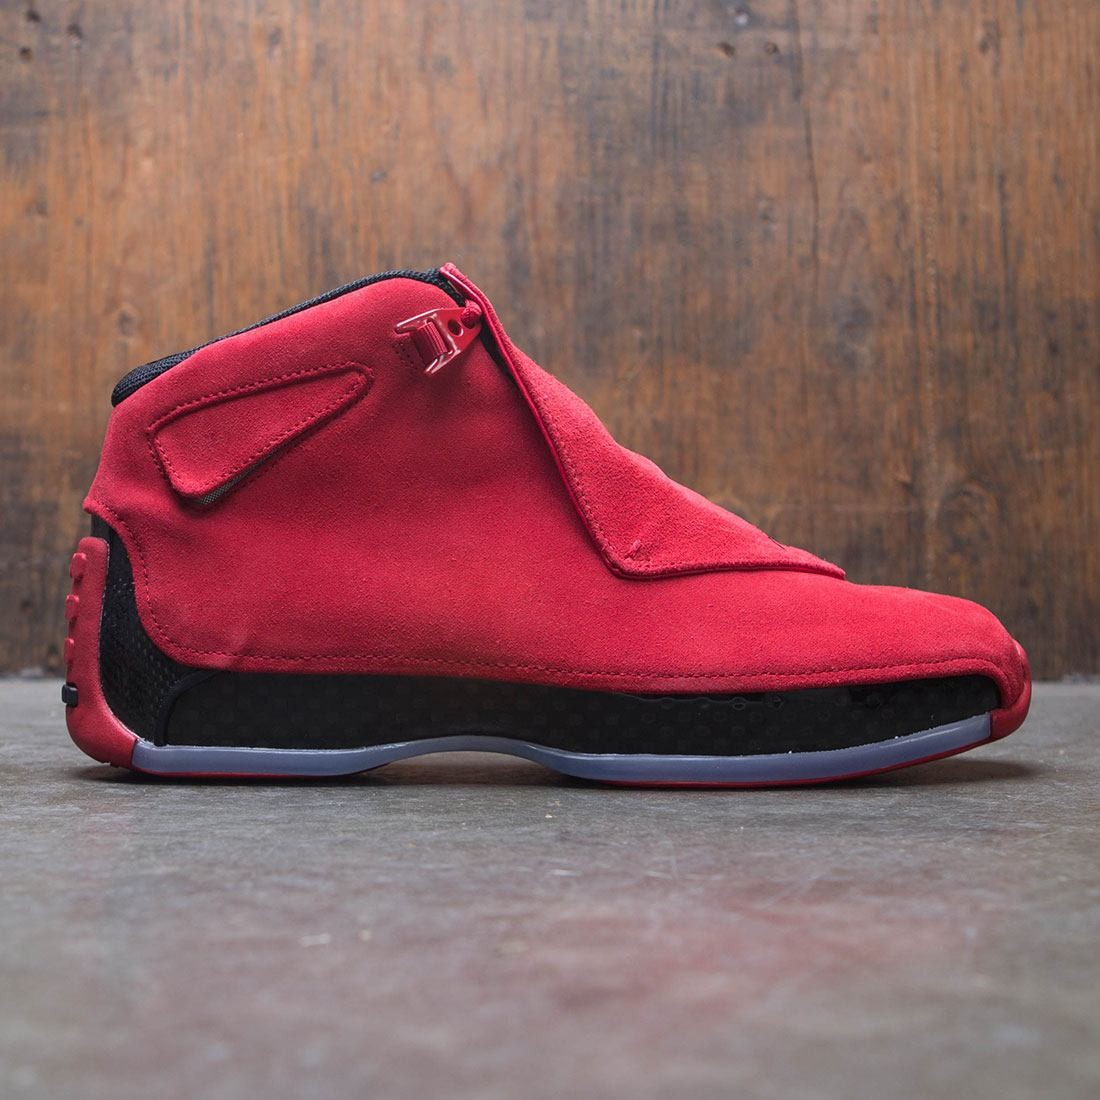 new styles f2e84 ddc0a jordan men air jordan 18 retro red gym red black